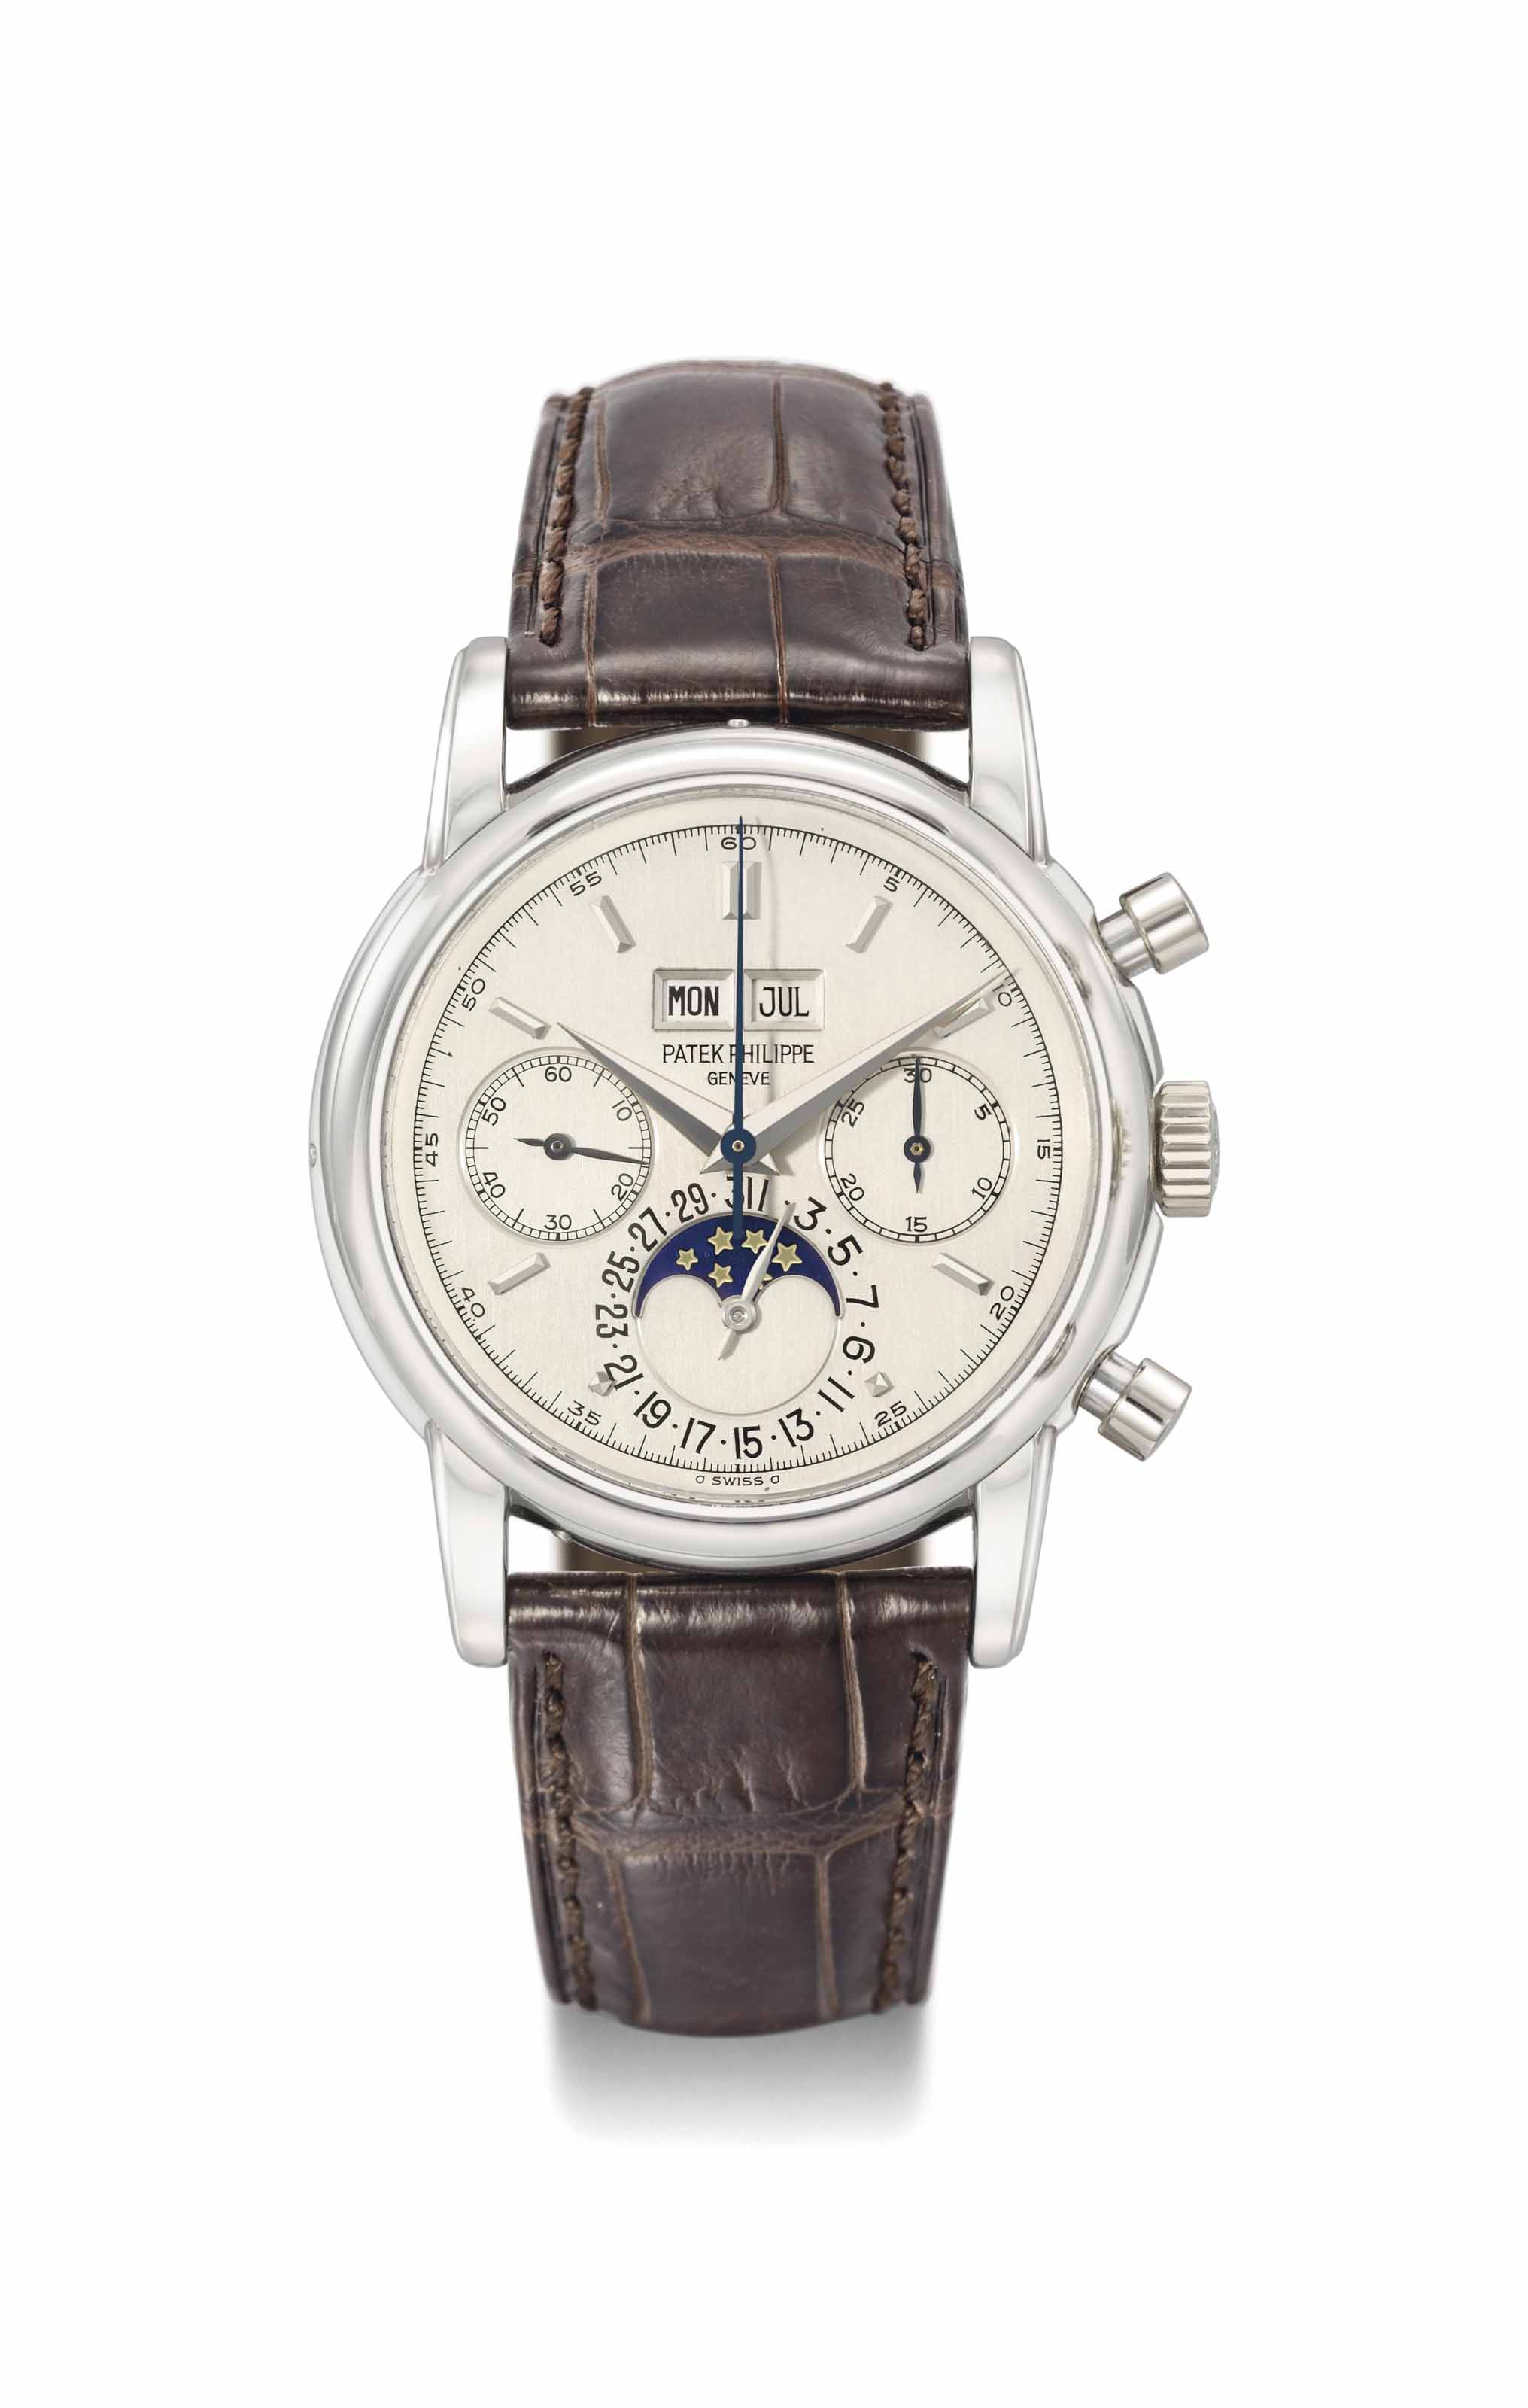 Patek Philippe. An exceptionally rare, very attractive and highly important platinum perpetual calendar chronograph wristwatch with moon phases